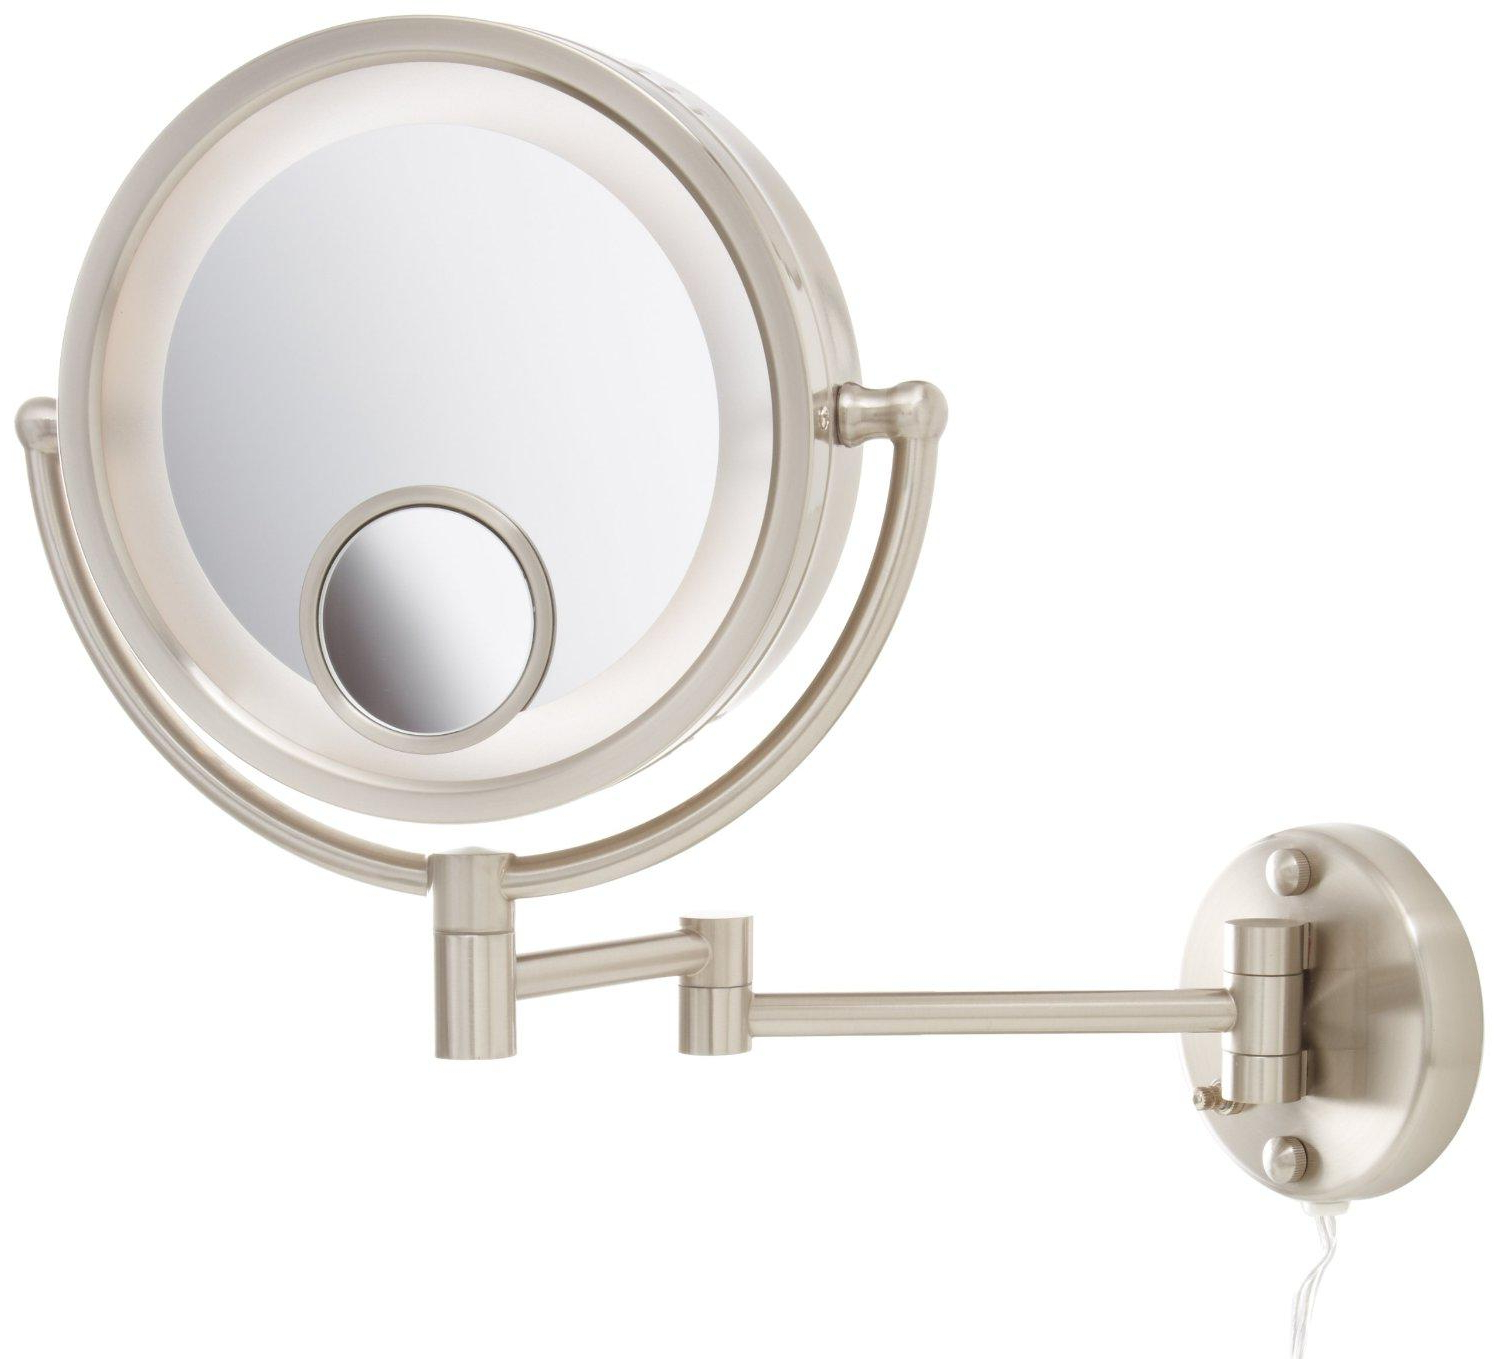 "Jerdon Hl8515N Lighted Wall Mount Makeup Mirror With 7X And 15X  Magnification, Nickel Finish, 8.5"" Intended For 2020 Magnifying Wall Mirrors For Bathroom (Gallery 3 of 20)"